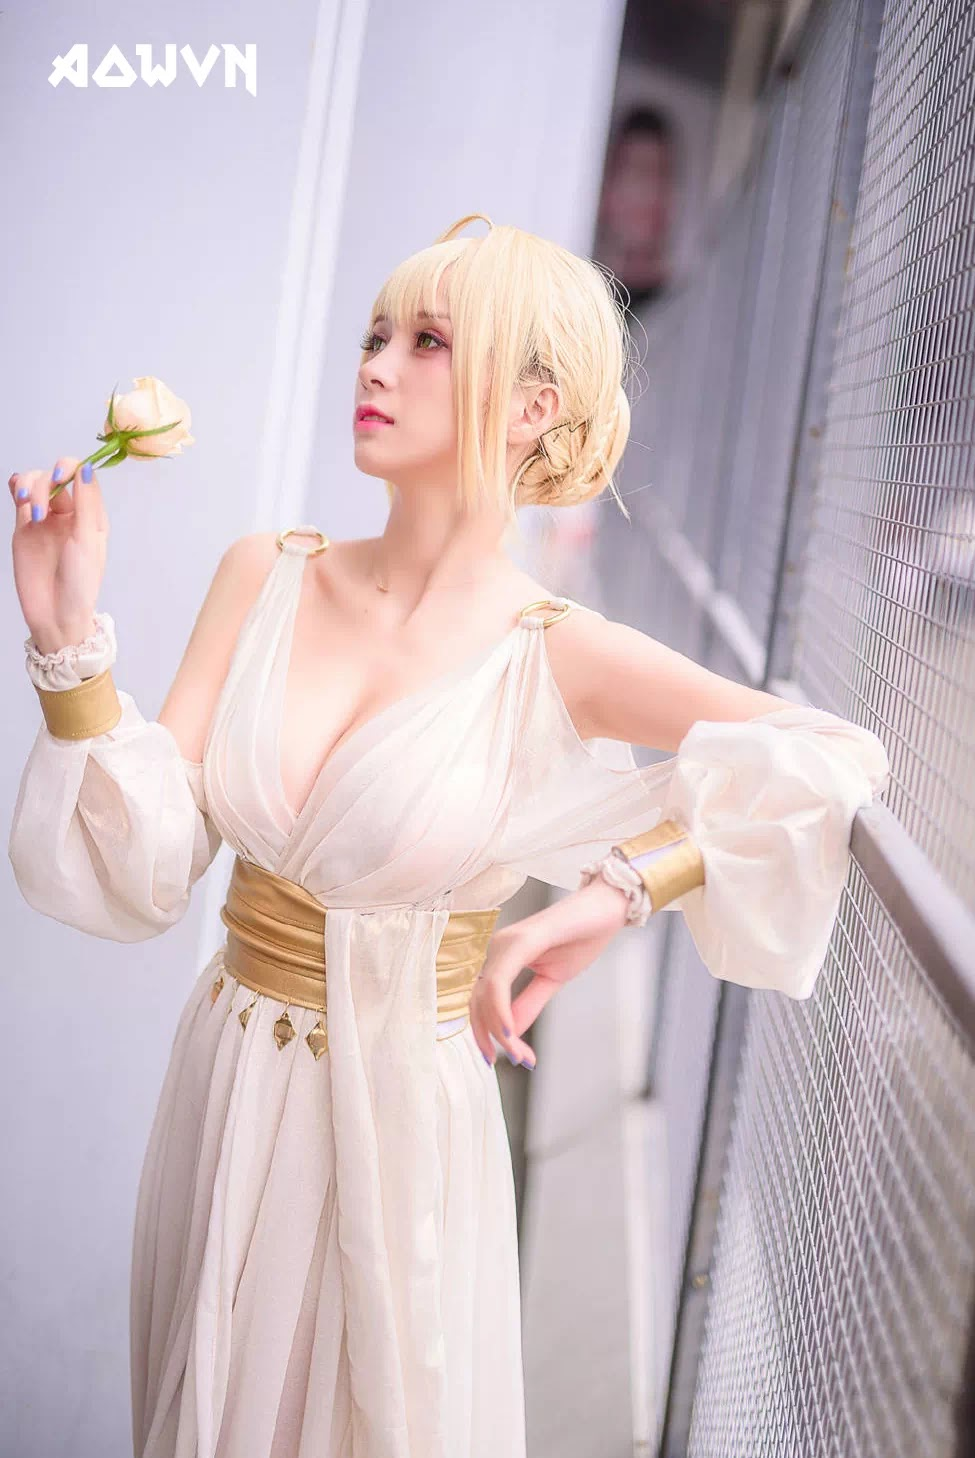 AowVN.org minz%2B%25286%2529 - [ Cosplay ] Nero - Saber anime Fate by Xia Mei Jiang tuyệt đẹp | AowVN Wallpapers